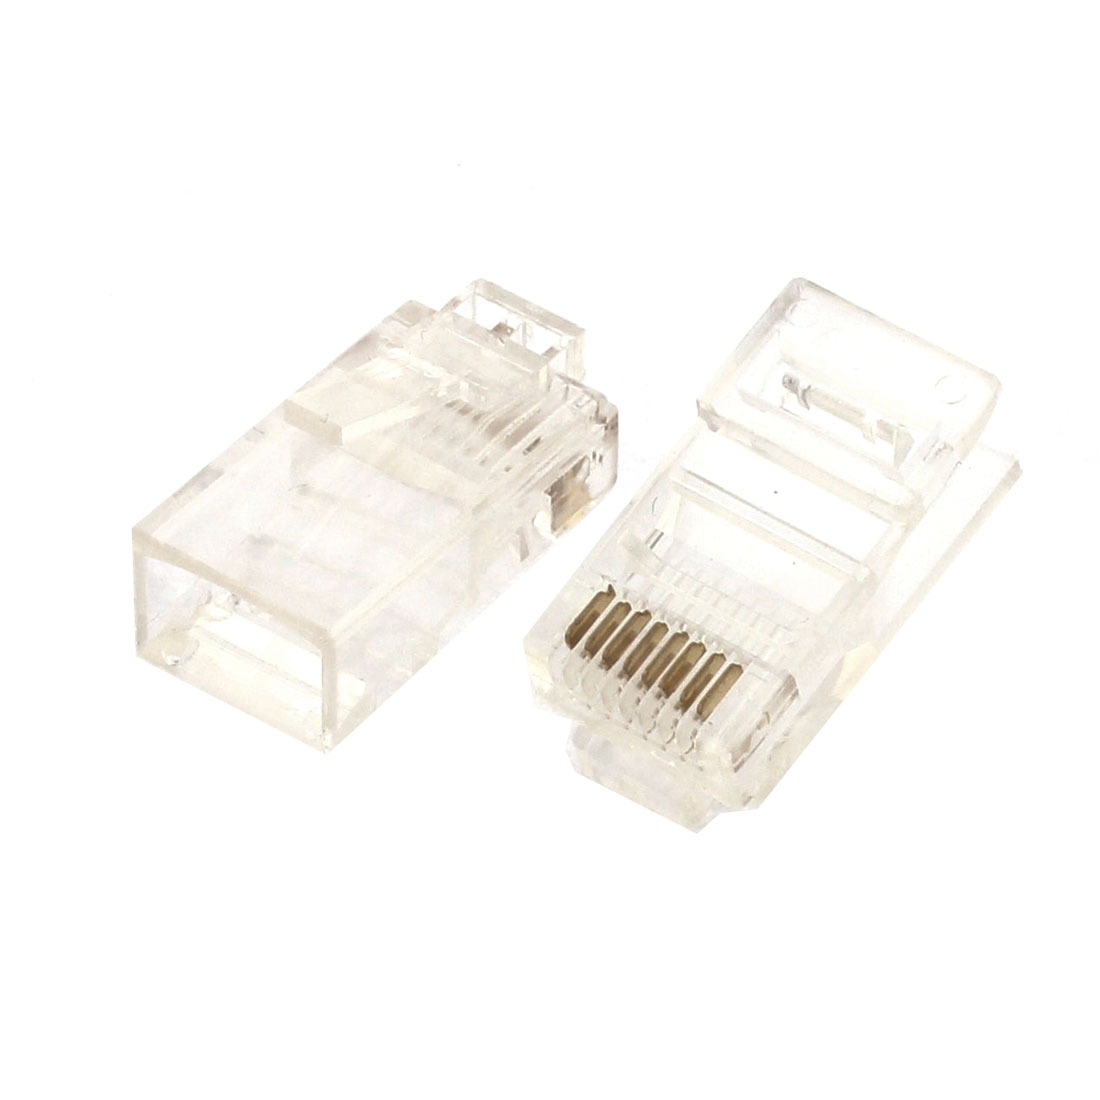 Cat5 Cat5e Network Cable 8P8C RJ45 Connector Plug Heads Modular 8pcs